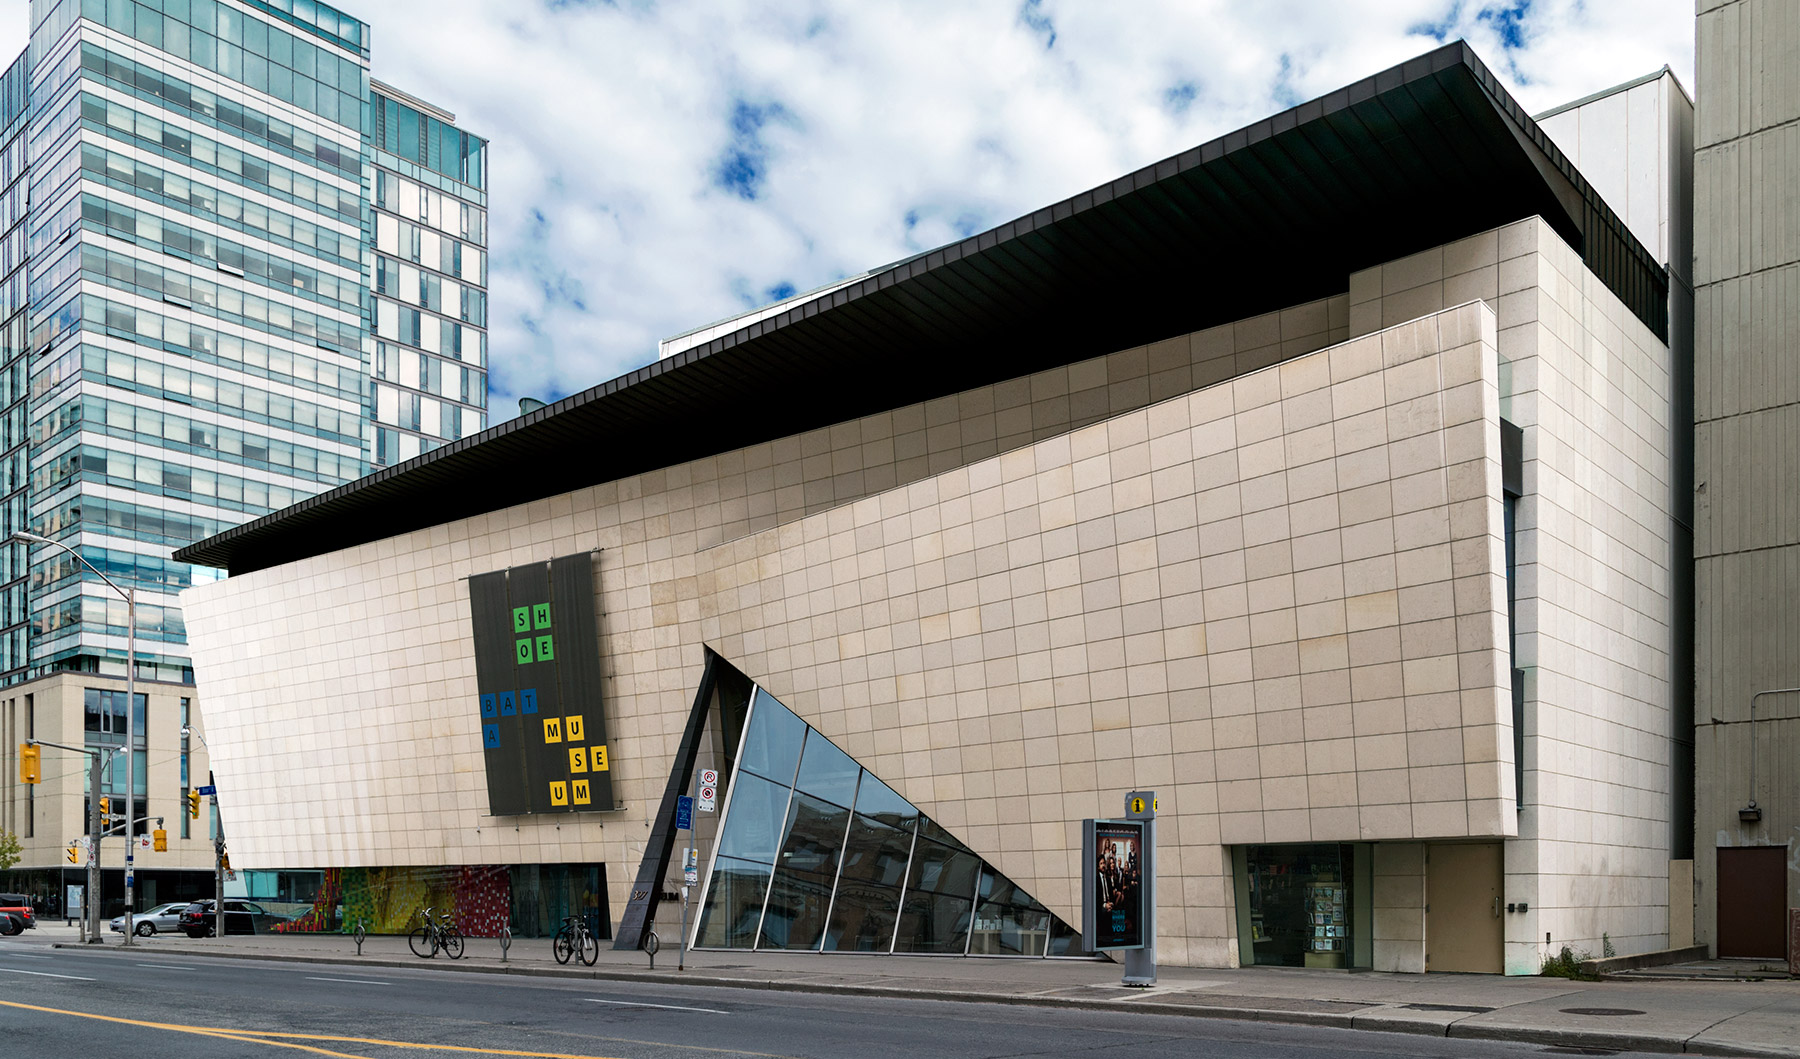 20150516. Take your feet to the Bata Shoe Museum during Doors Op